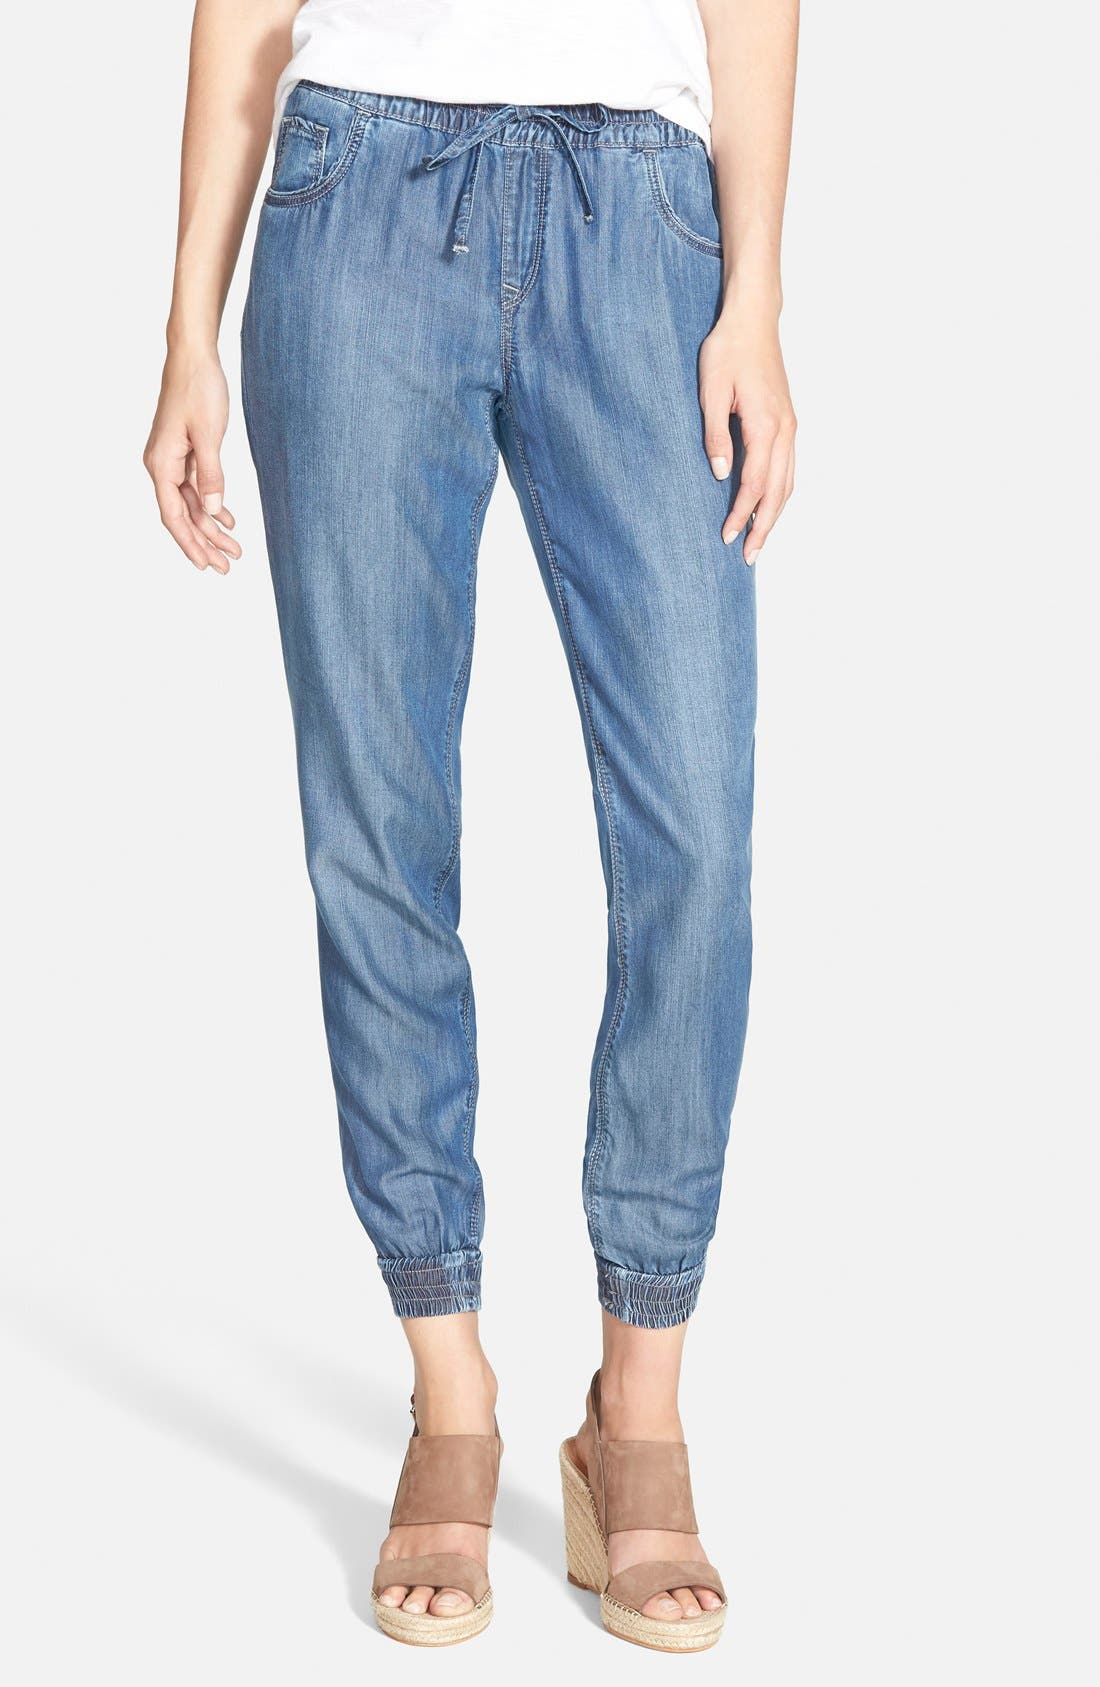 'Aubrey' Drawstring Denim Pants,                             Main thumbnail 1, color,                             420